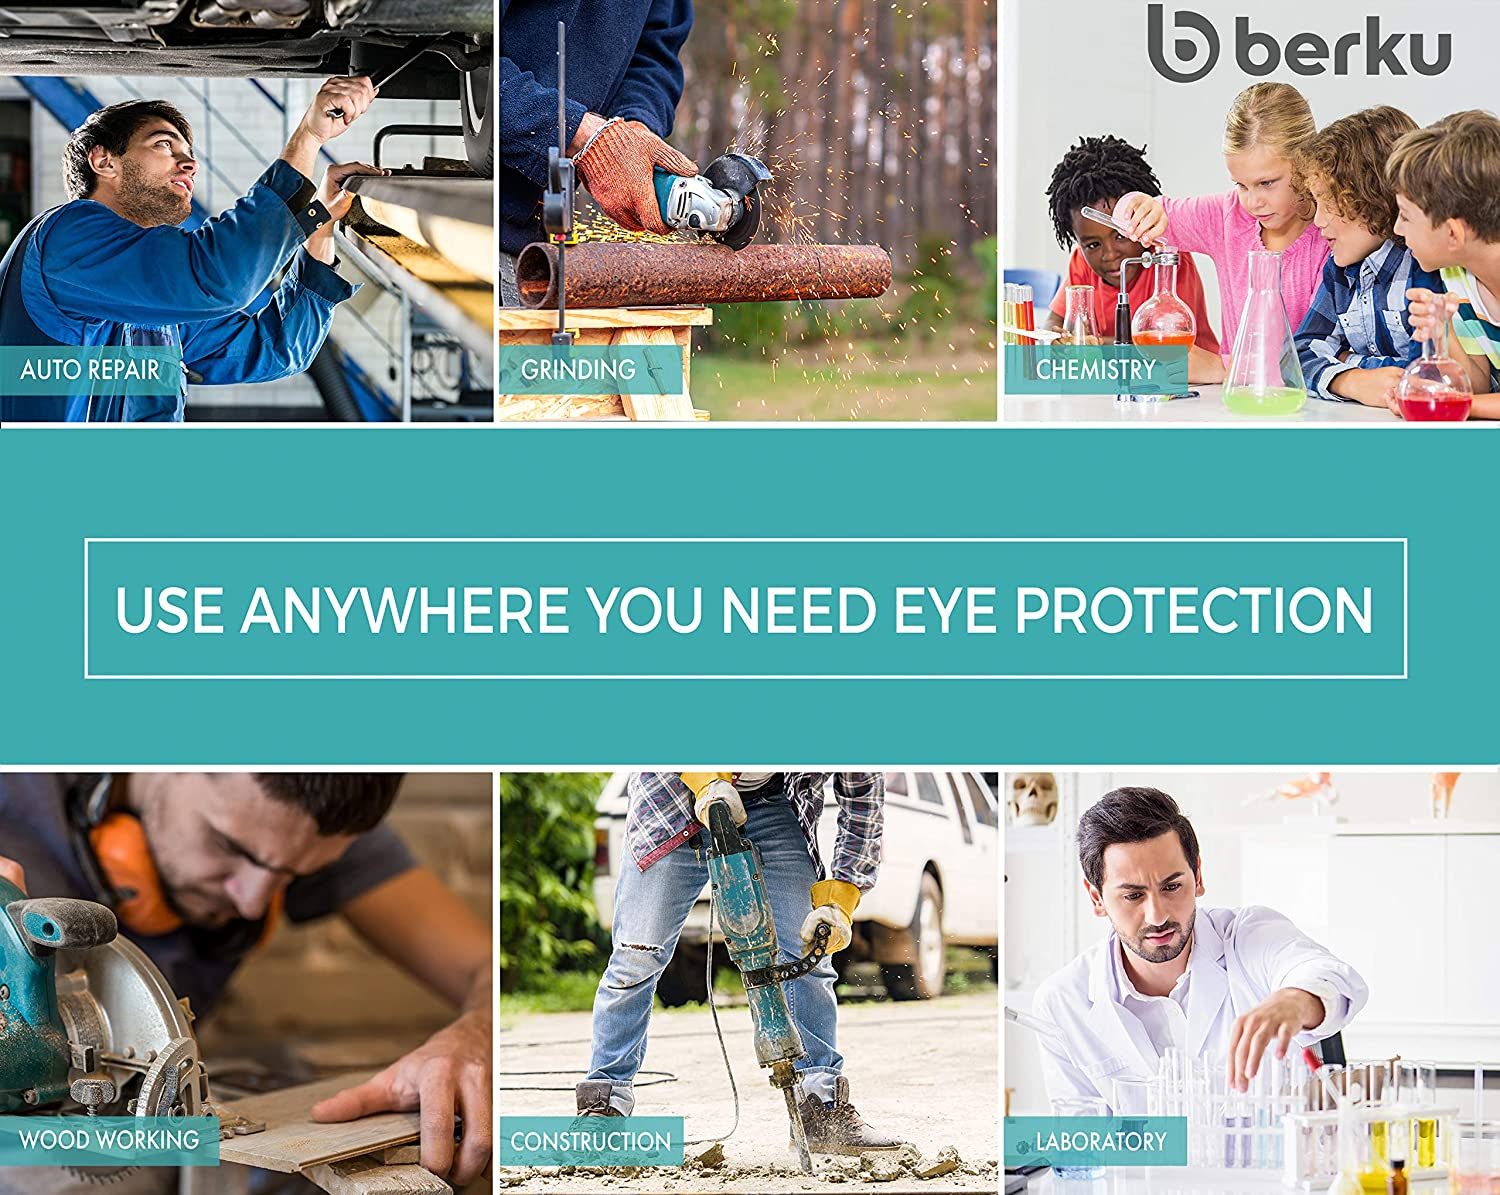 eye protection with clear scratch-resistant and UV protective coated lenses fog-free Berku safety glasses with integrated side protection